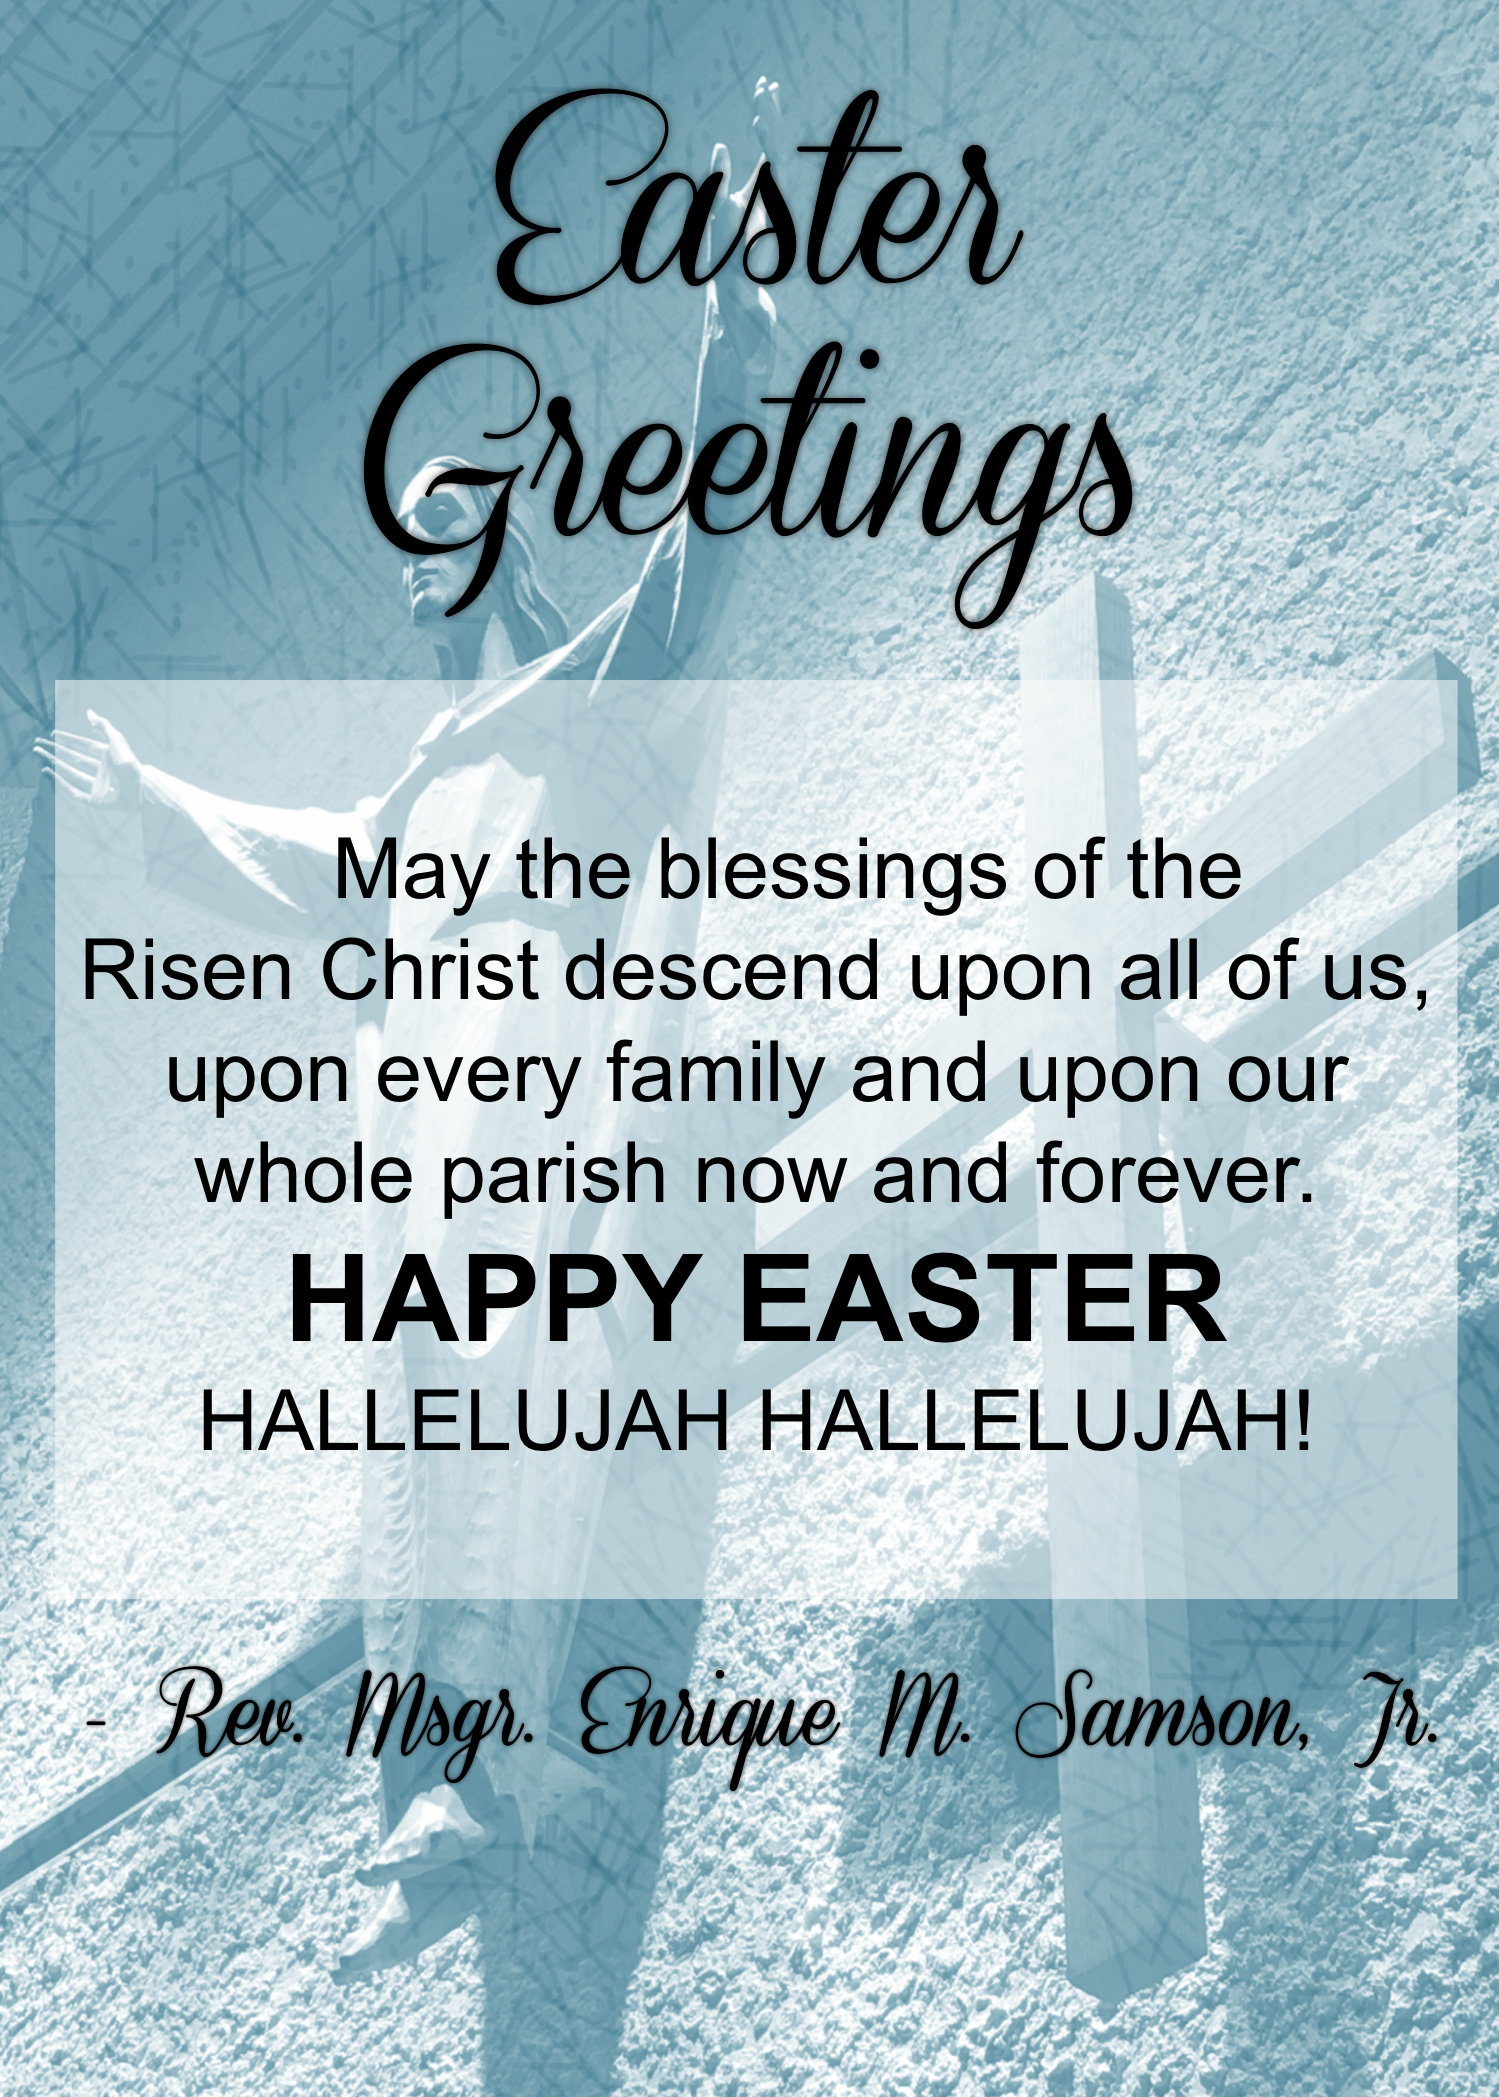 Message from the parish priest st peters roman catholic church easter greetings posted march 30 2016 m4hsunfo